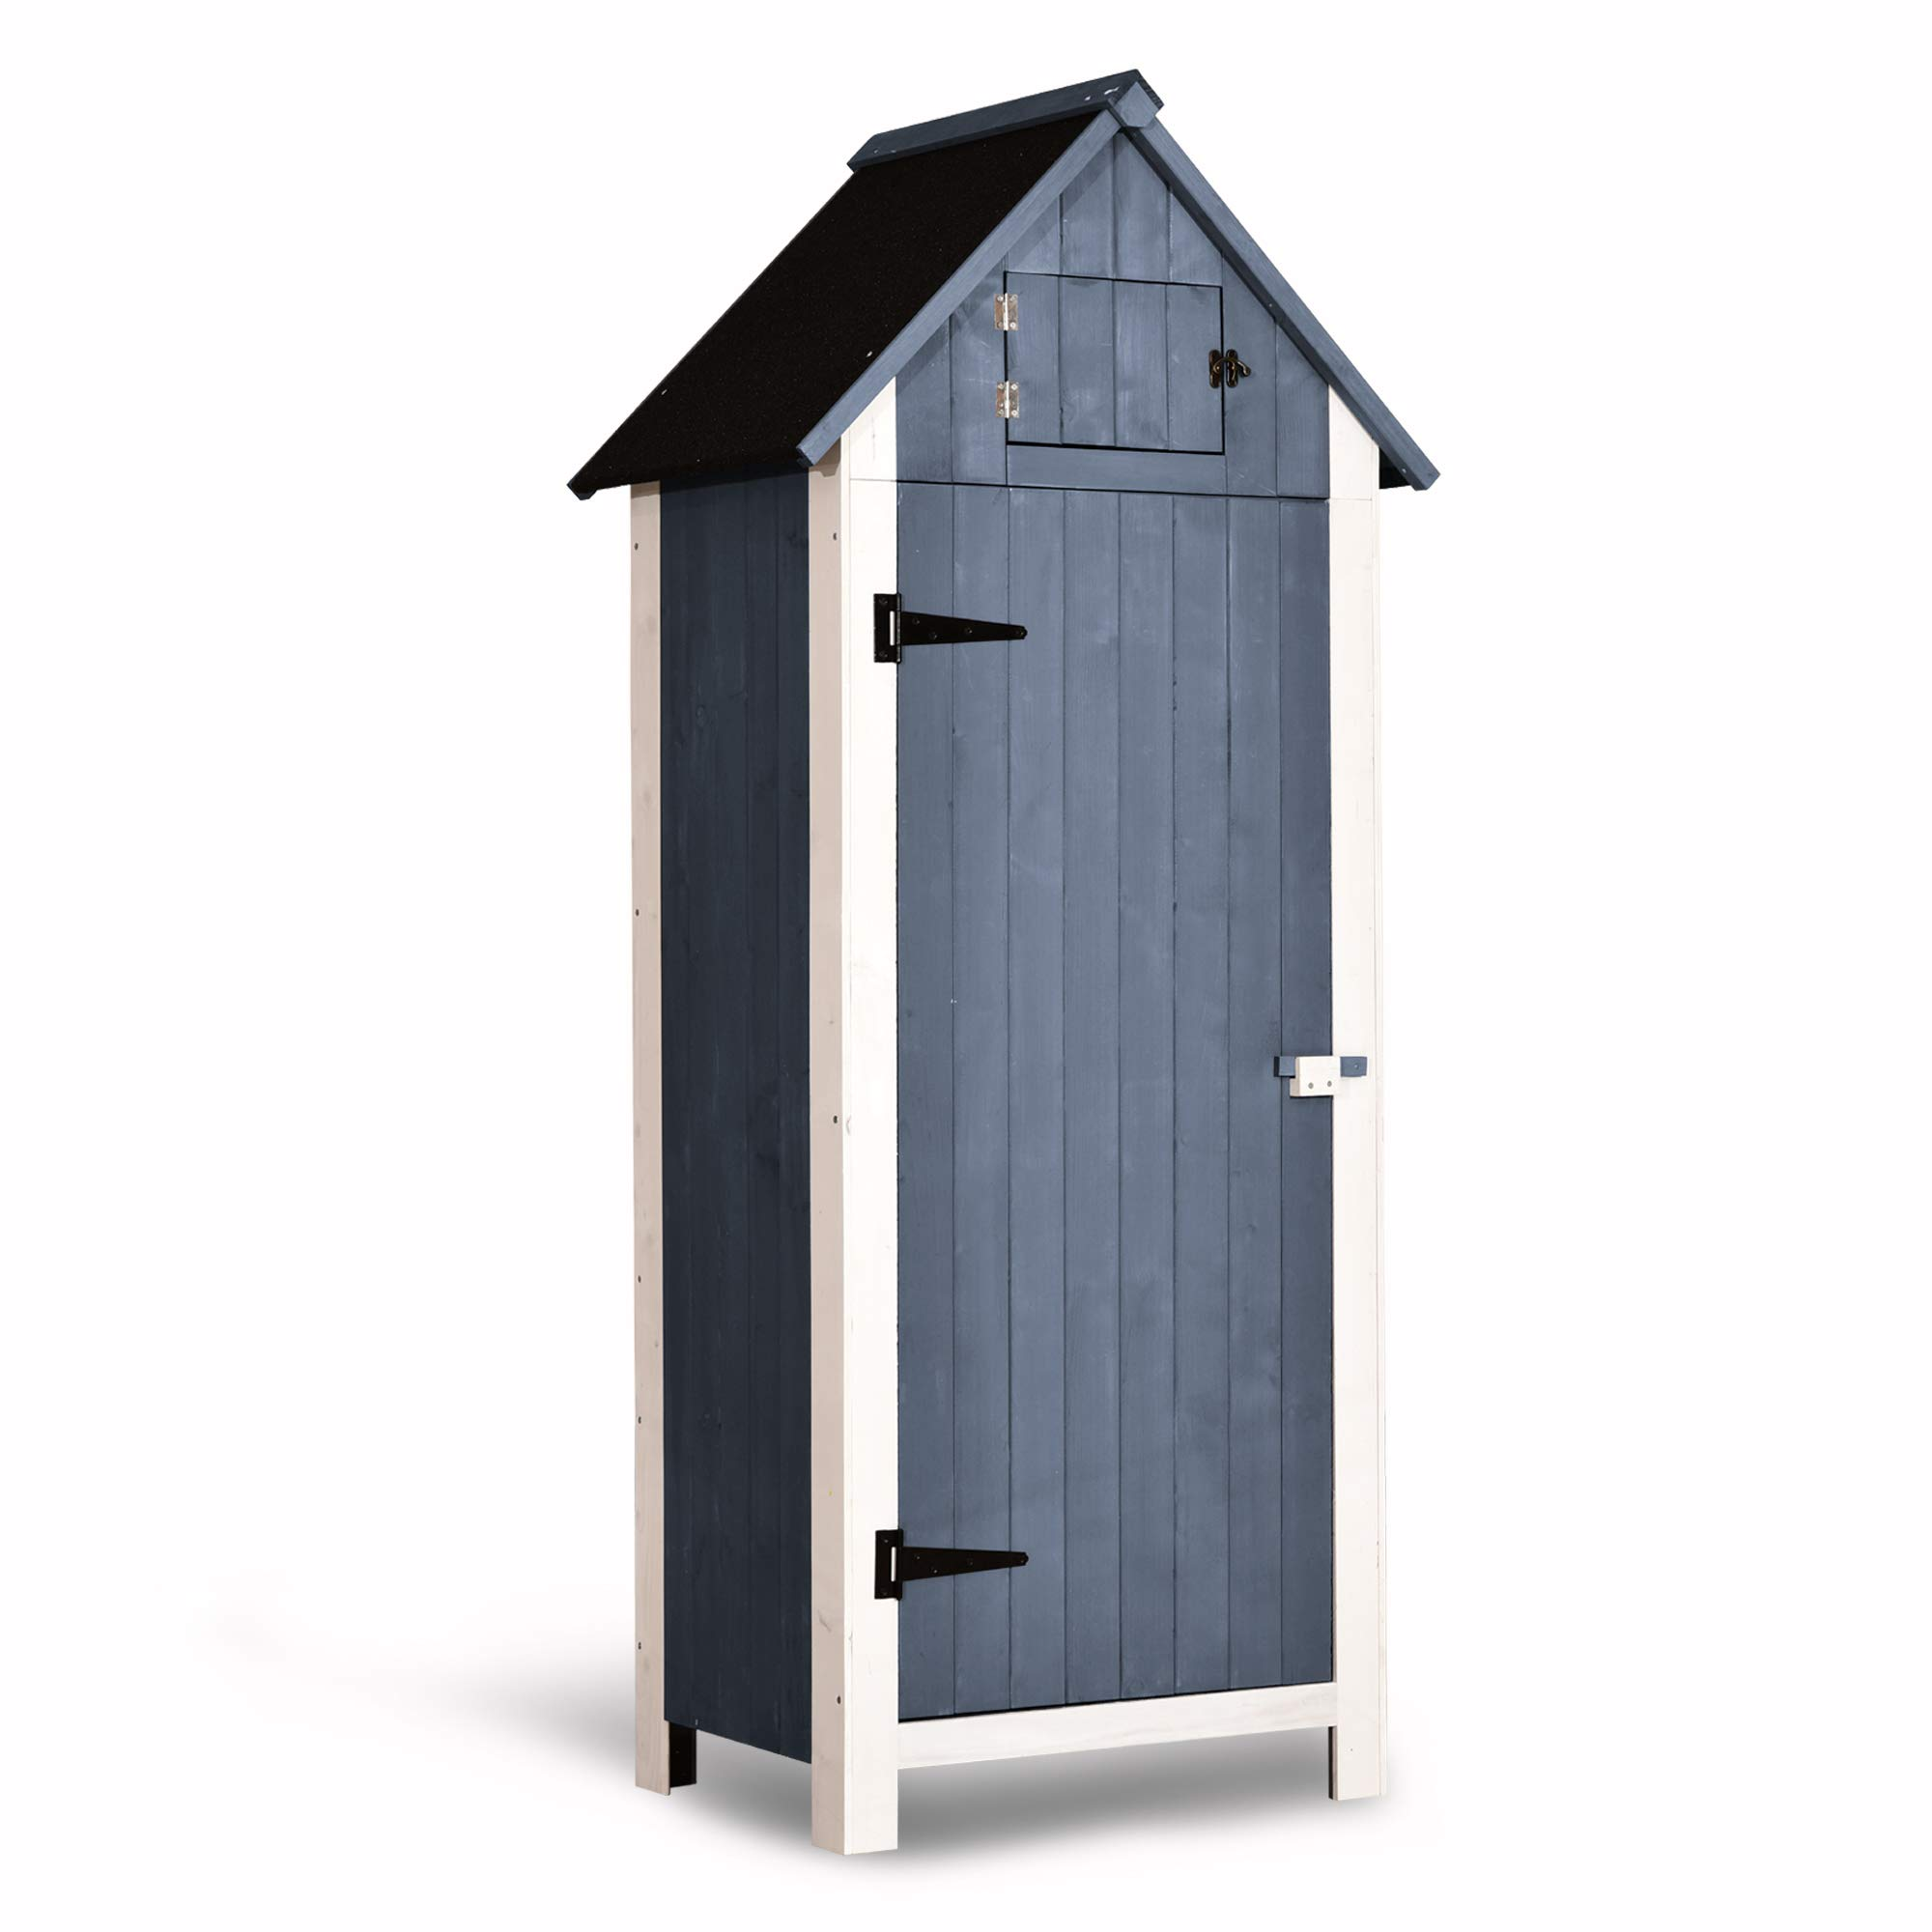 MCombo Outdoor Storage Cabinet Tool Shed Wooden Garden Shed Organizer Wooden Lockers with Fir Wood (70'') (Grey) by MCombo